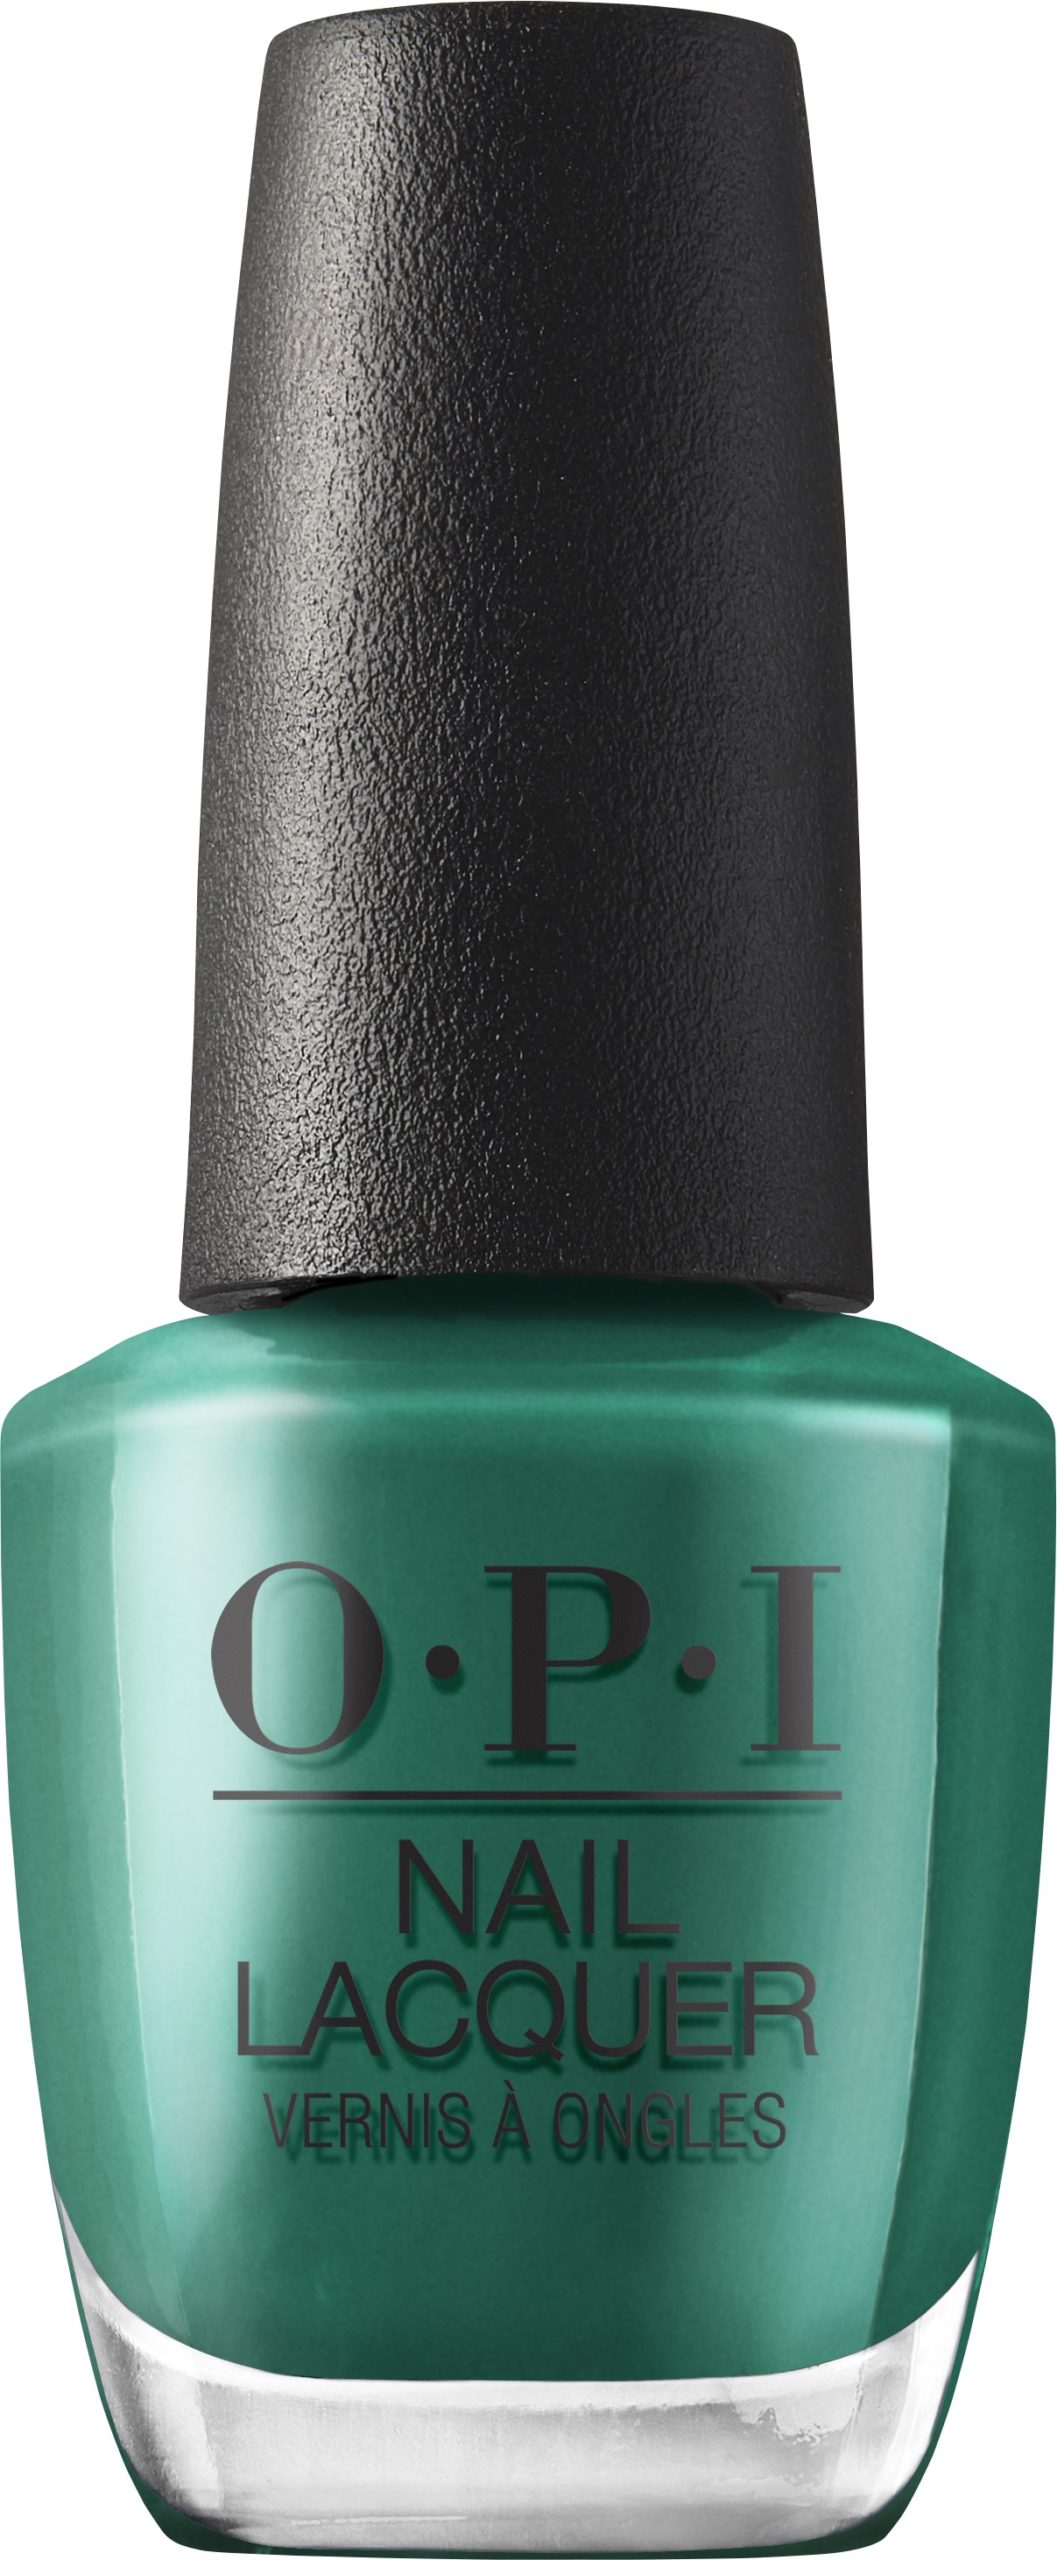 My Celebrity Life – OPI Rated PeaG Nail Lacquer